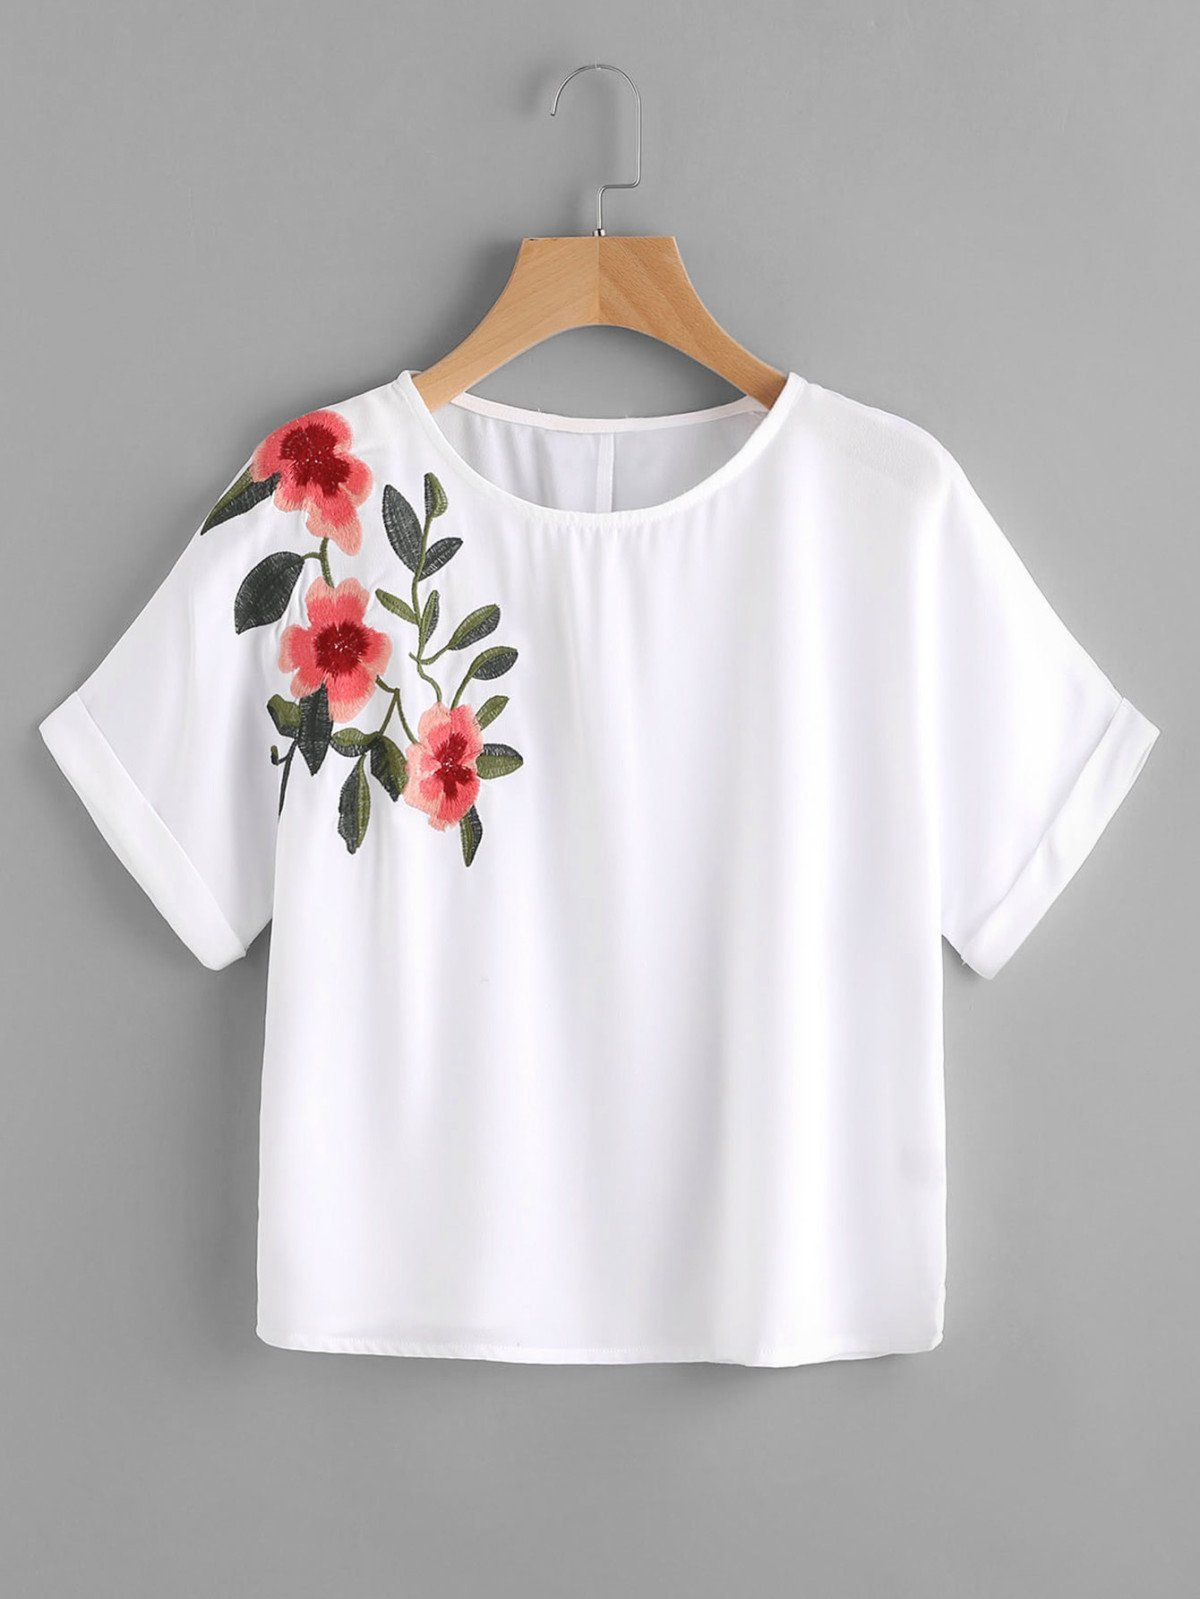 Rolled cuff embroidery crop tee winter fashion shirt designs and